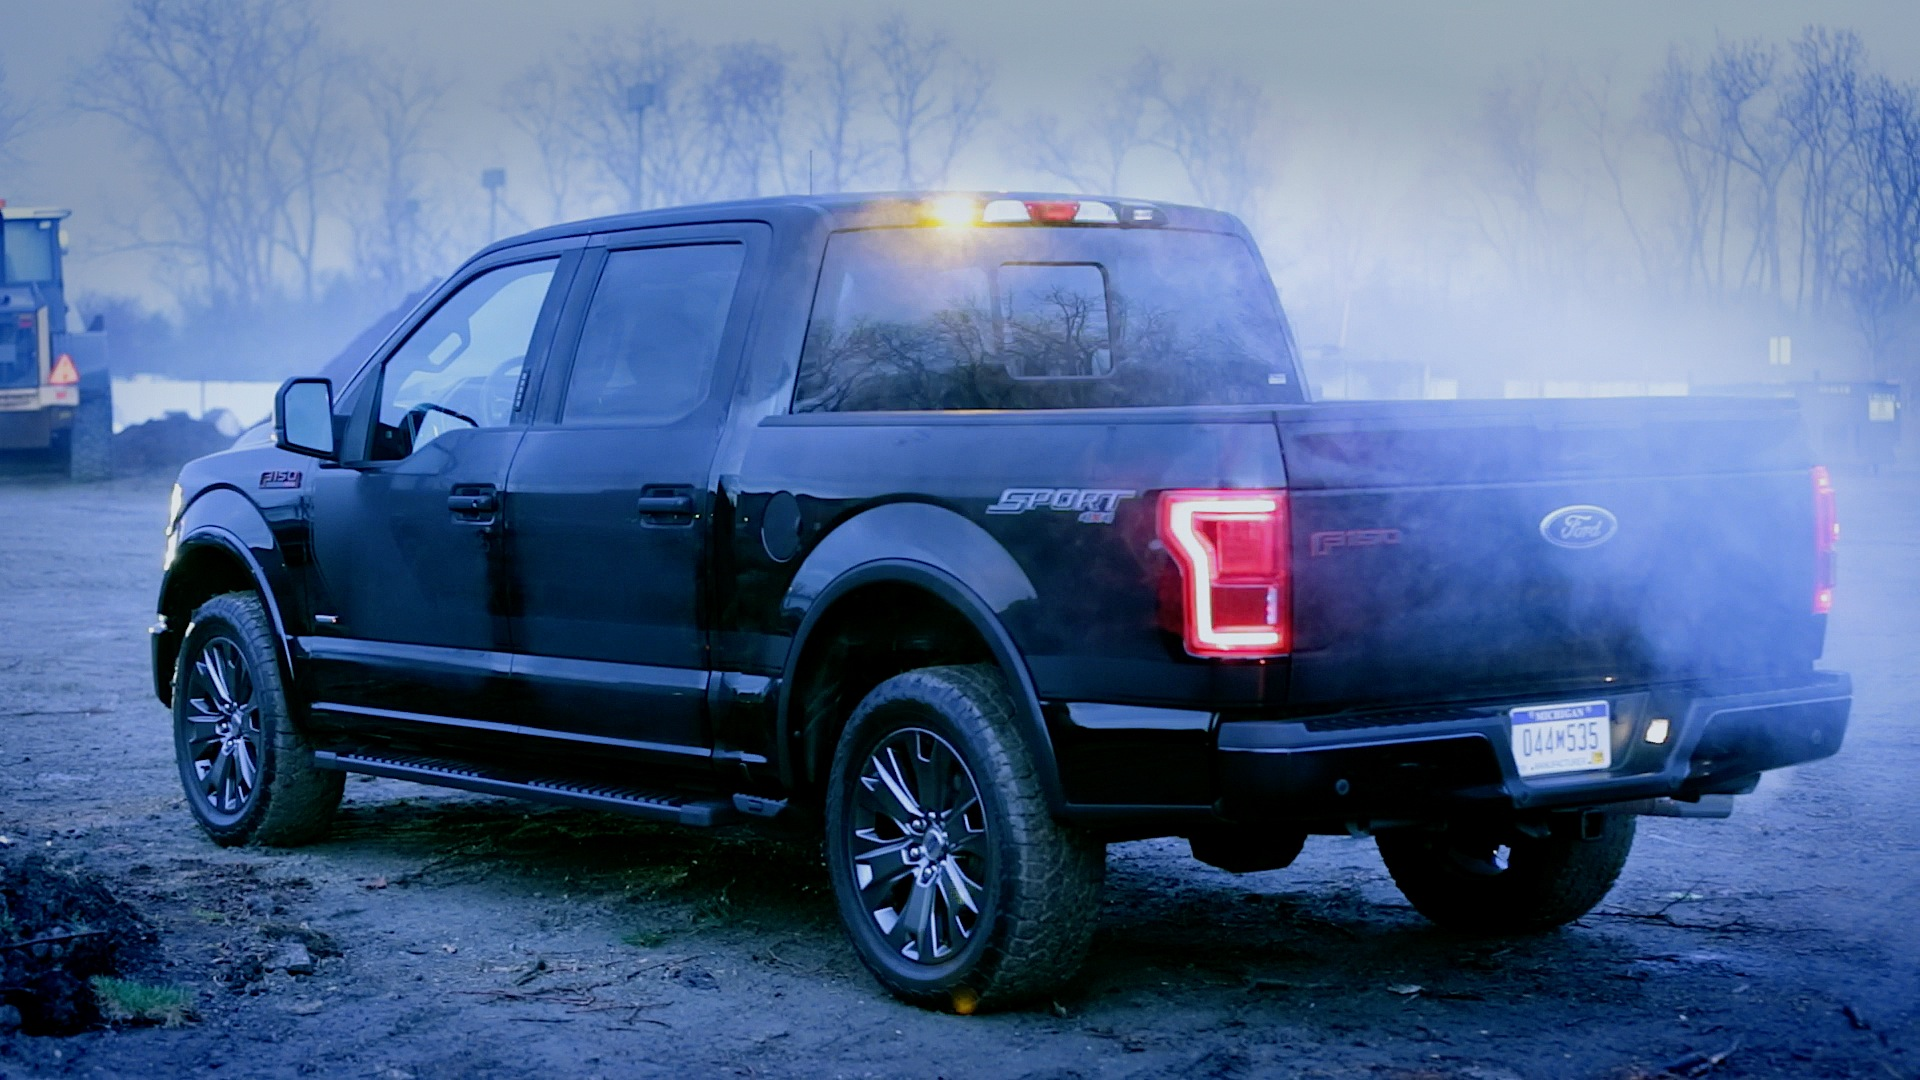 Ford, America's truck leader, topping the best-selling vehicles list with the F-150